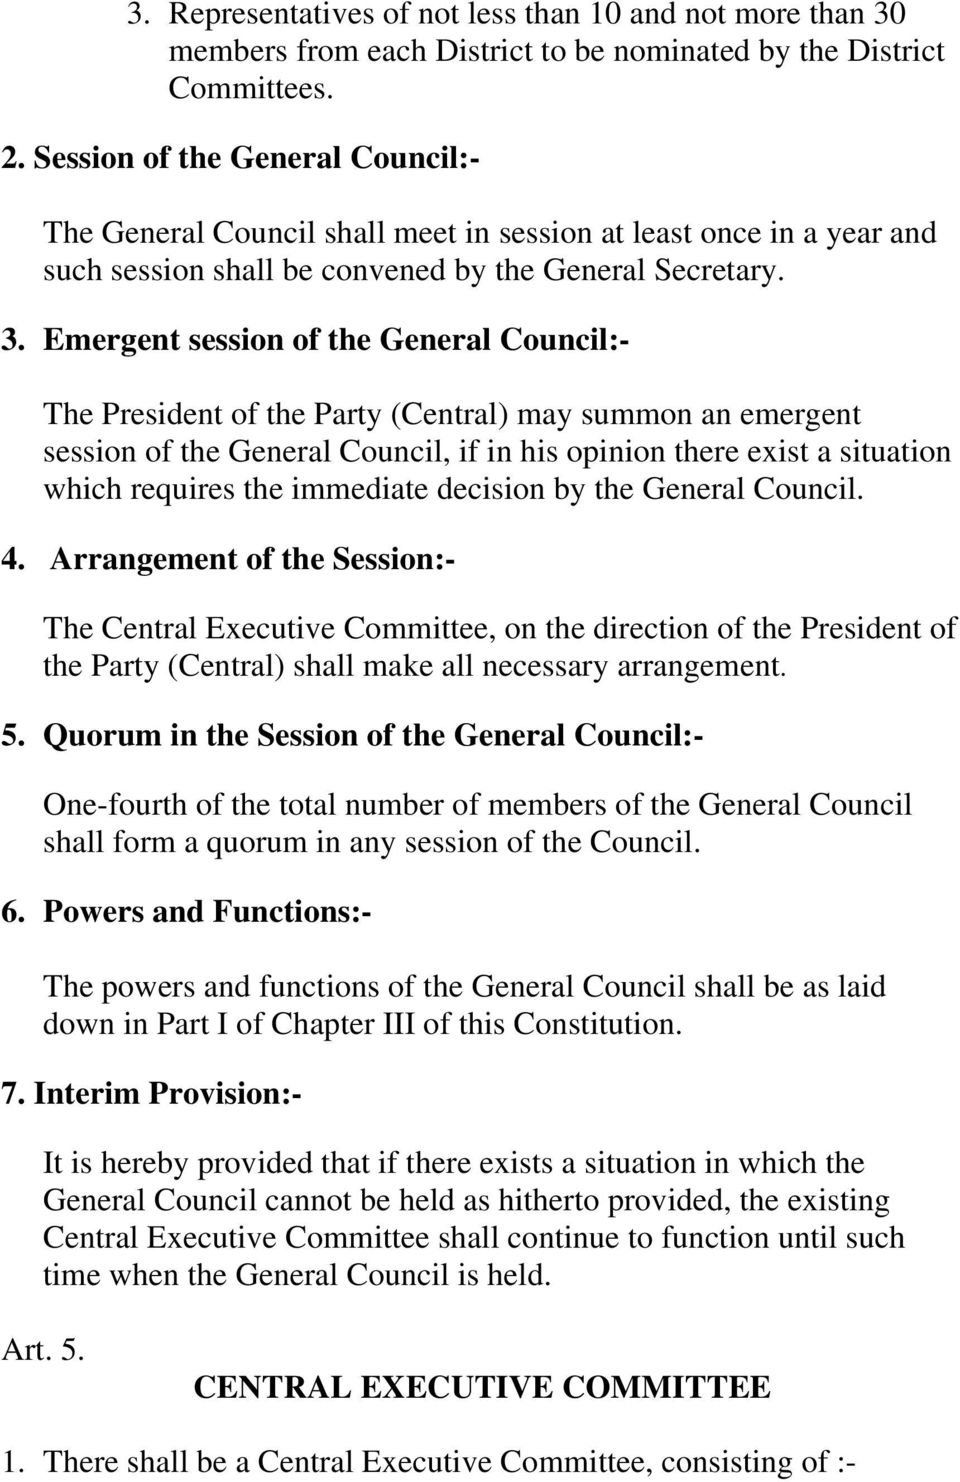 Emergent session of the General Council:- The President of the Party (Central) may summon an emergent session of the General Council, if in his opinion there exist a situation which requires the